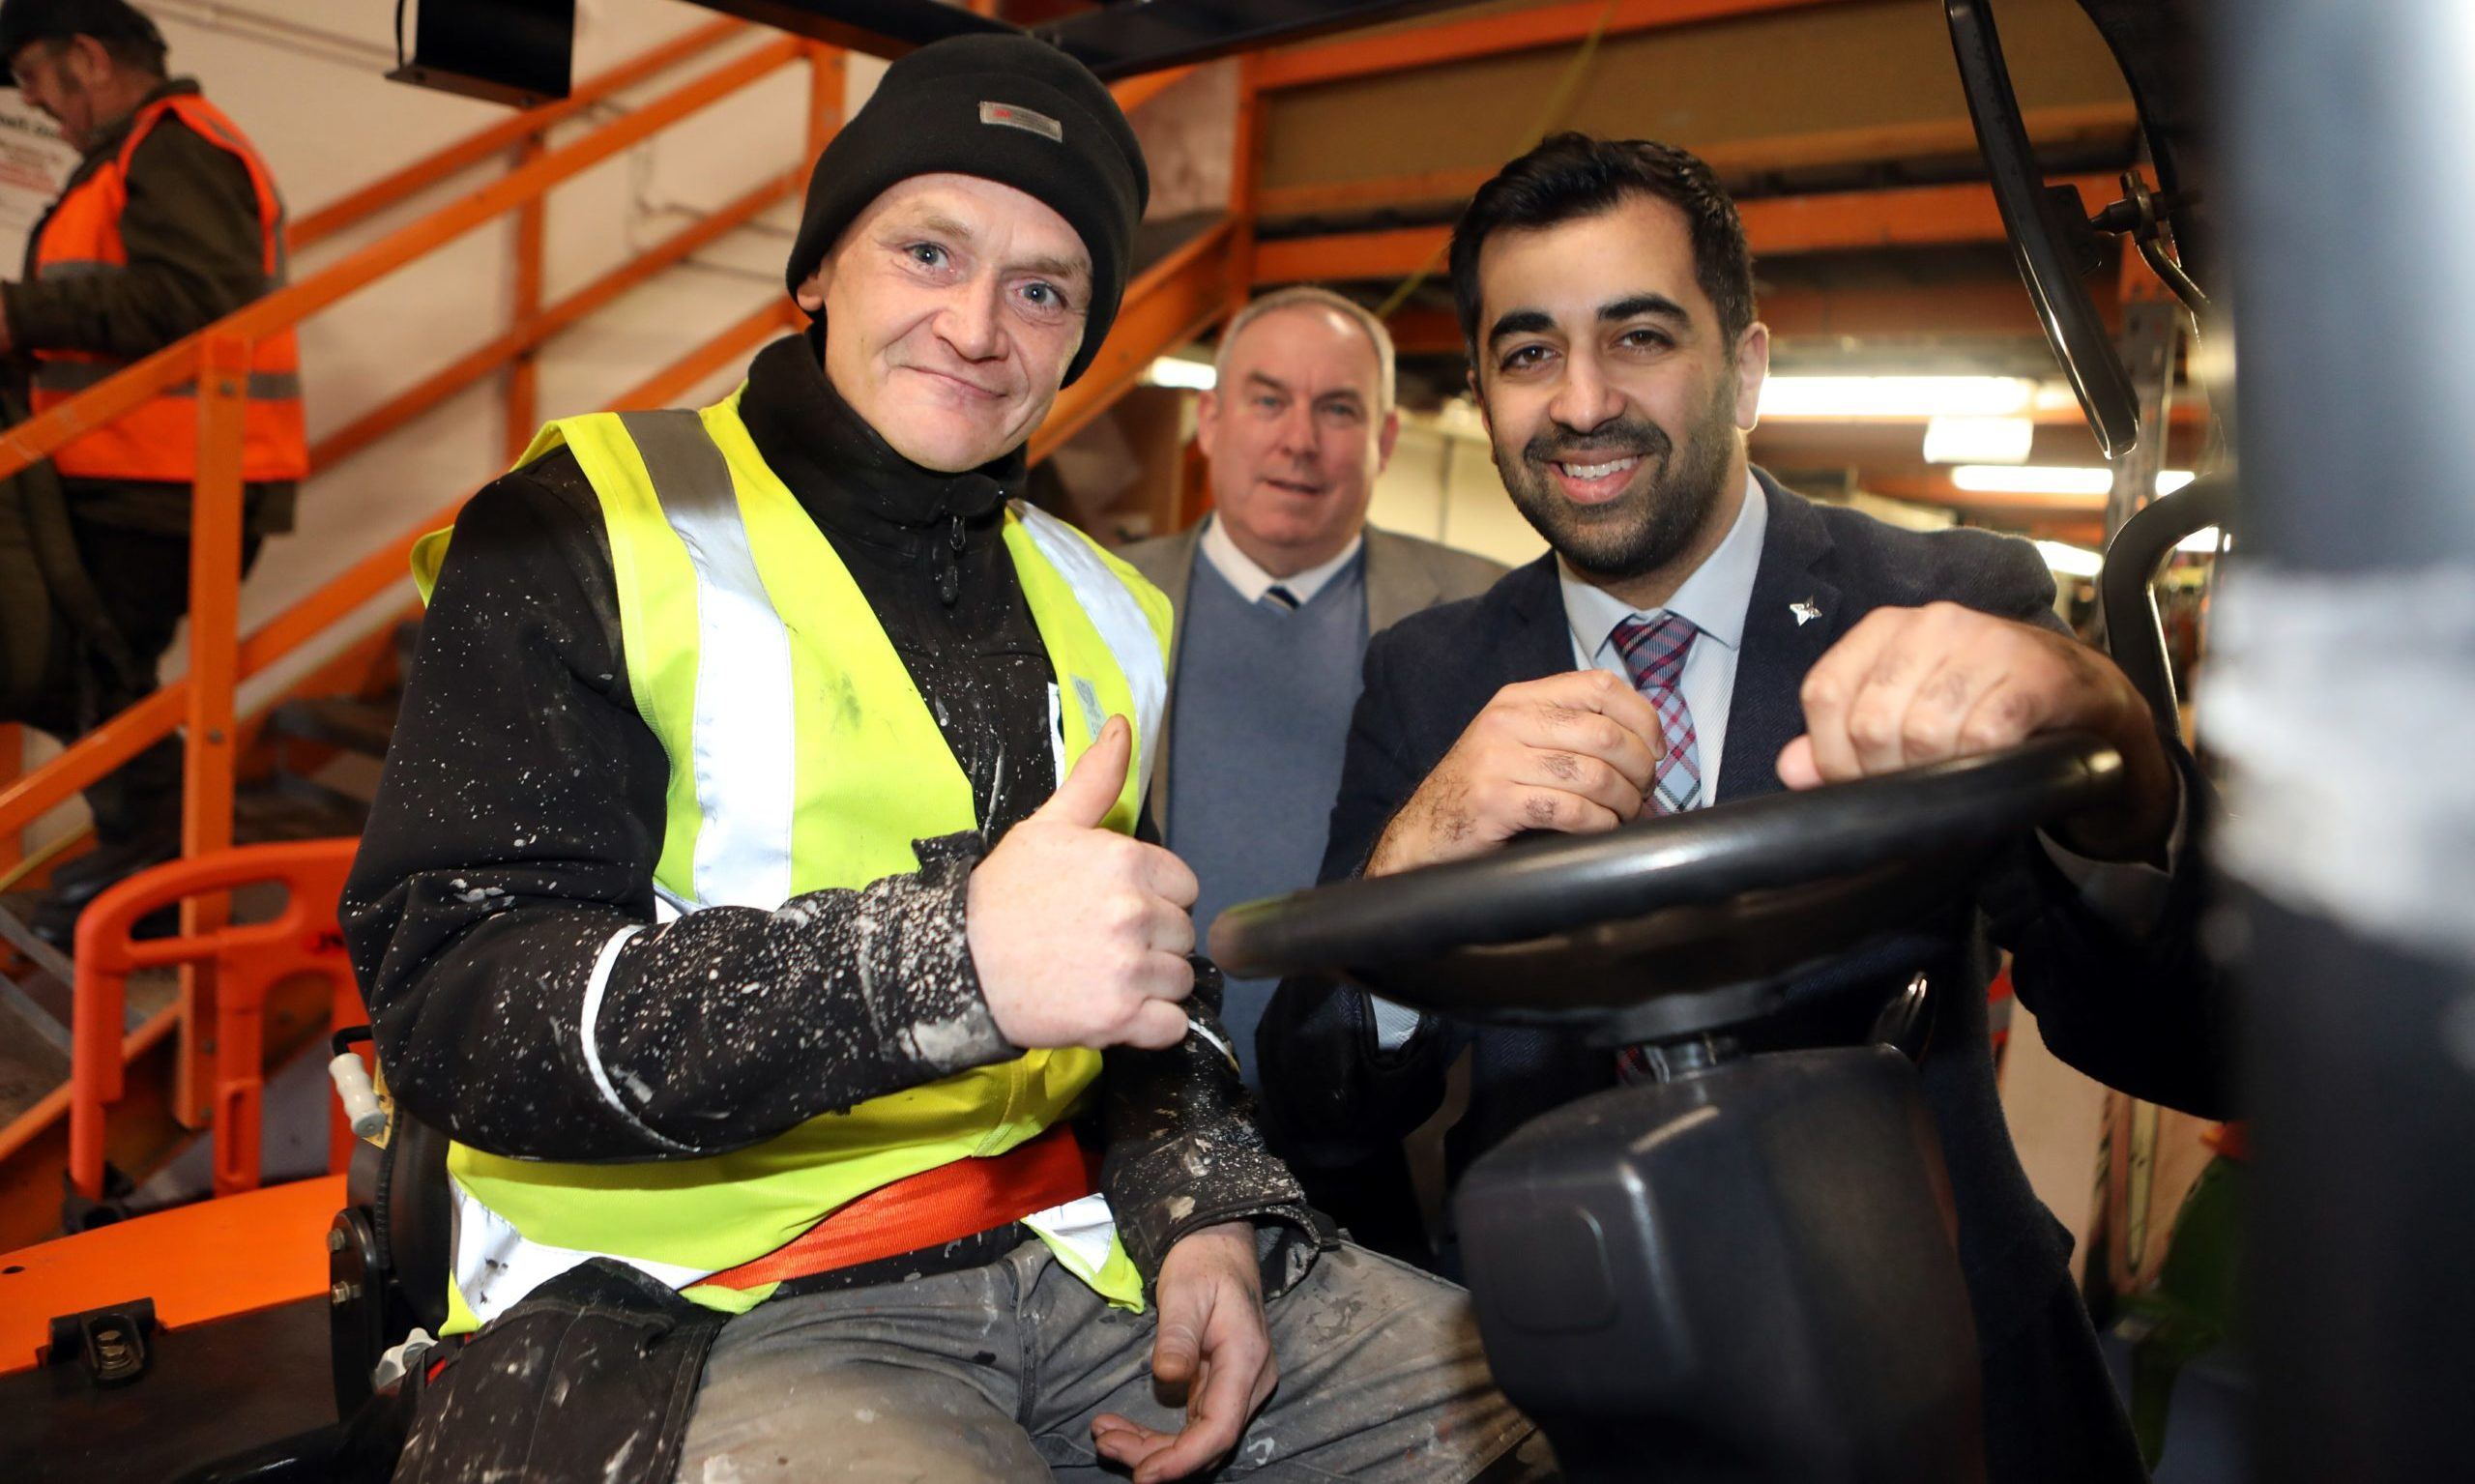 Humza Yousaf MSP visited the Westbank Centre in Perth